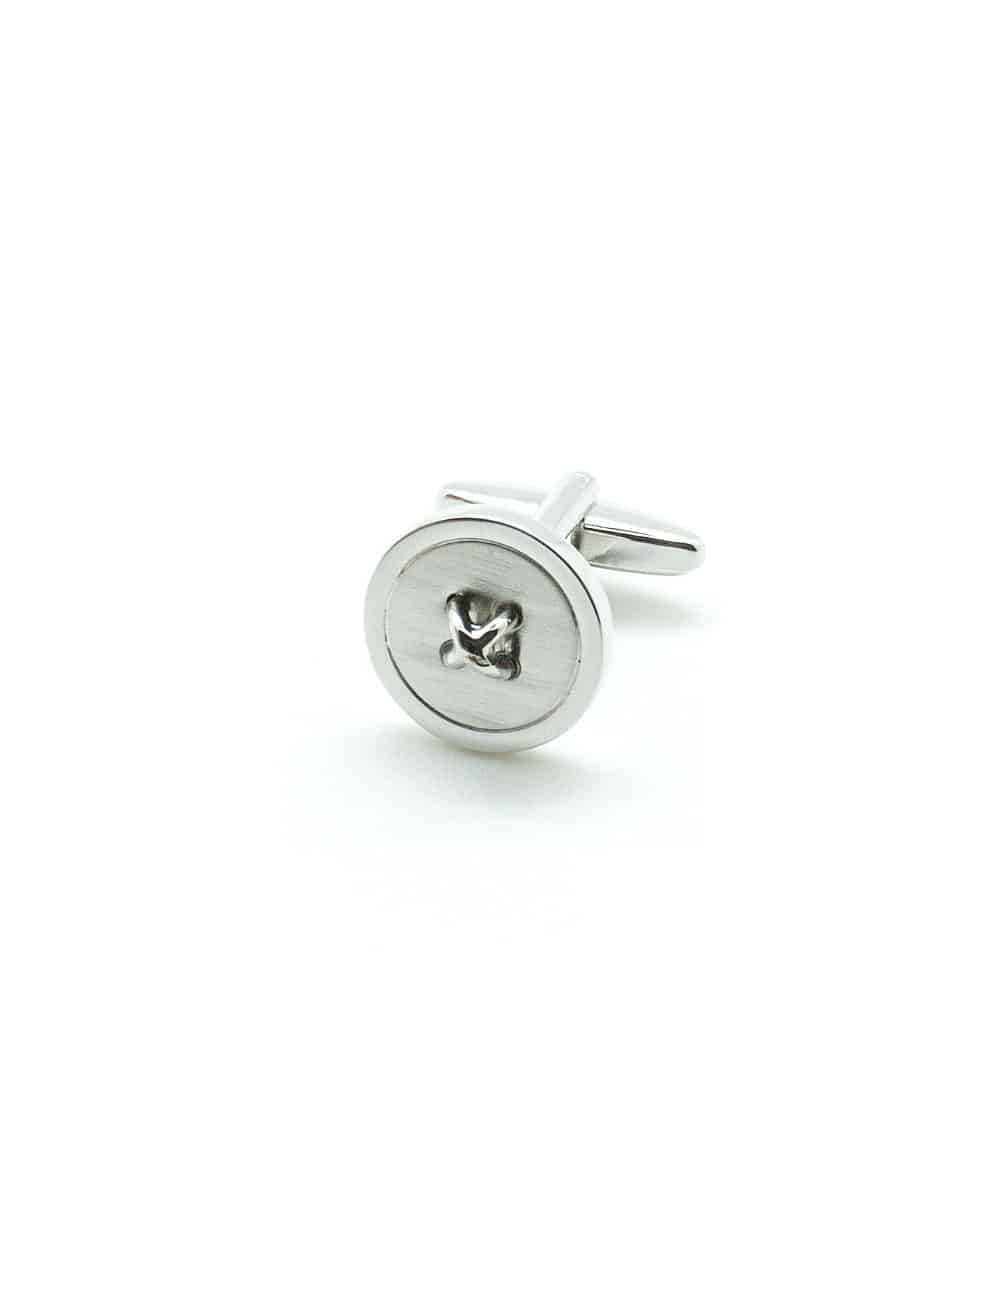 Matte Silver Button with Extruded Cross Stitch Cufflink C263NF-023